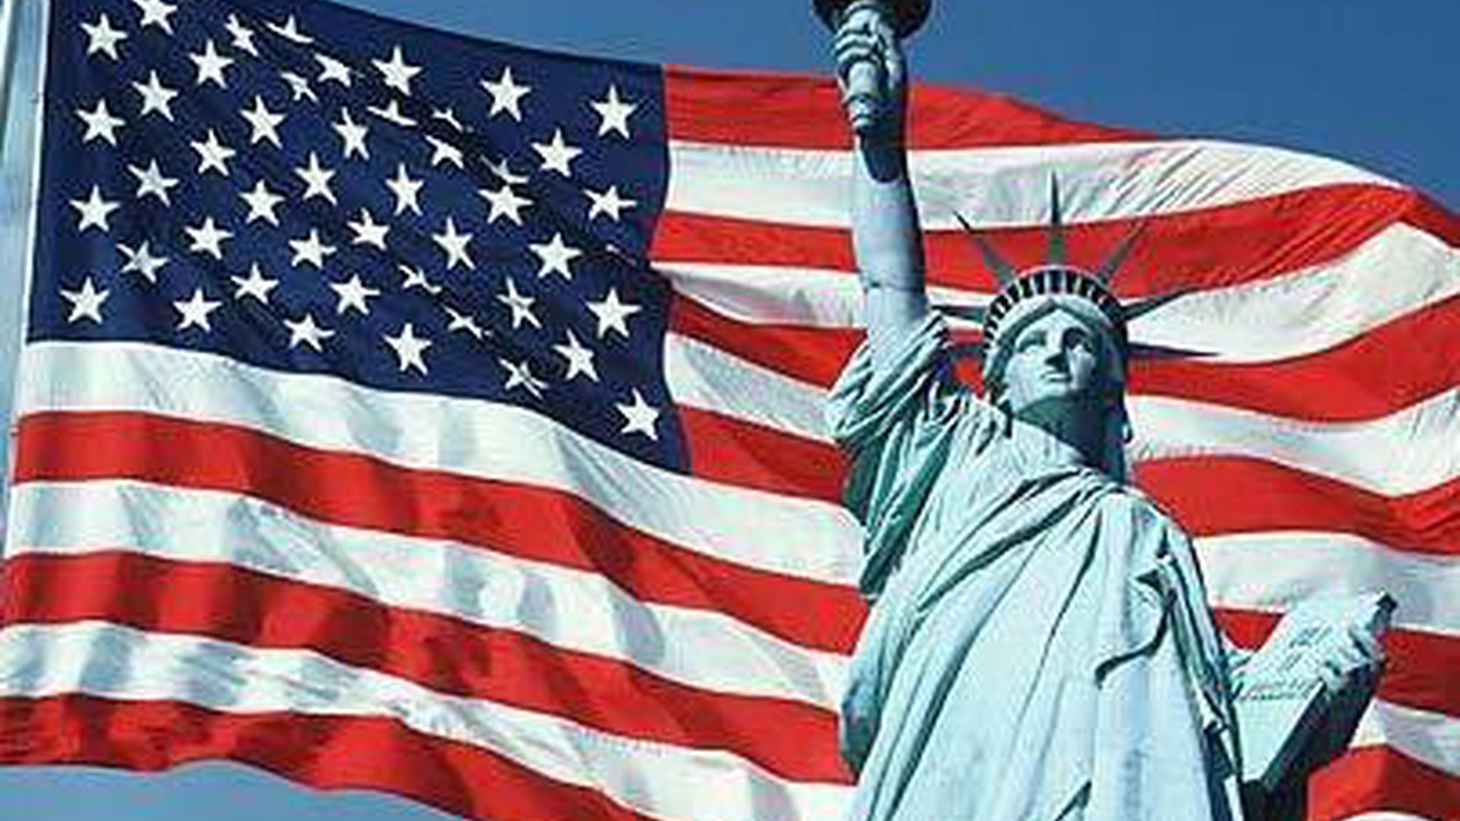 Independence Day and the meaning of the Red, White and Blue.